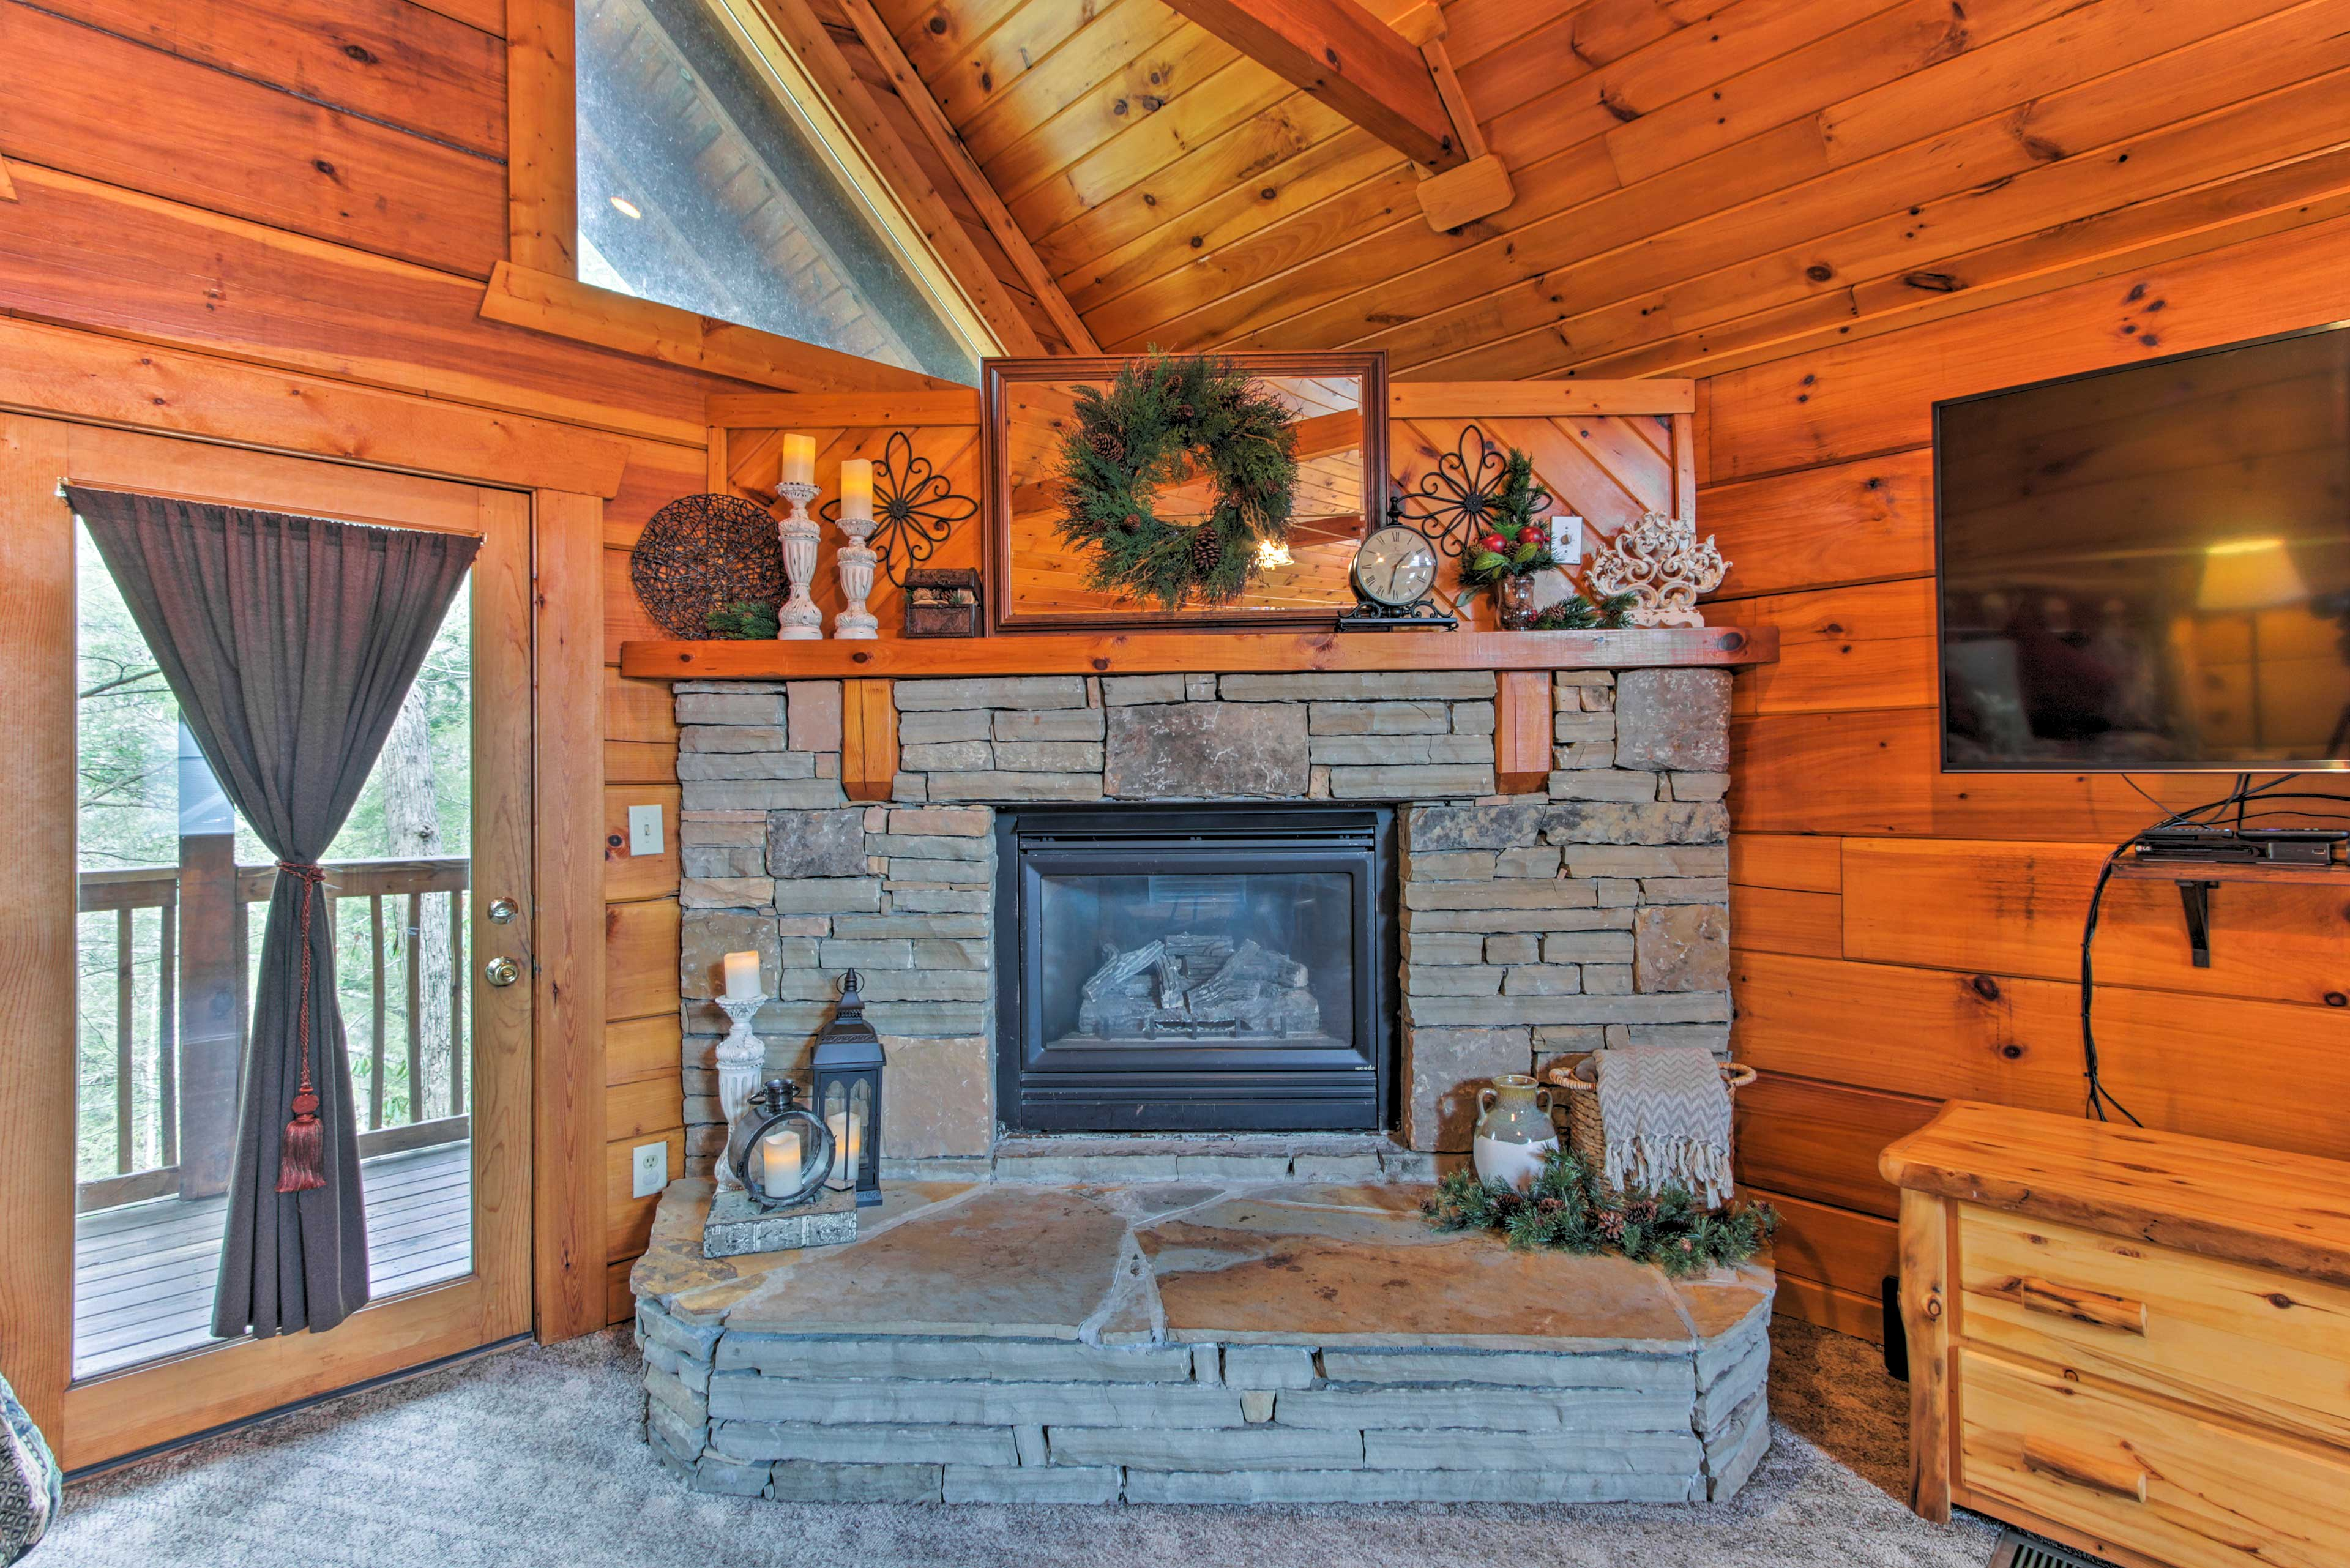 A stacked stone gas fireplace is ready to warm you up on cool evenings.